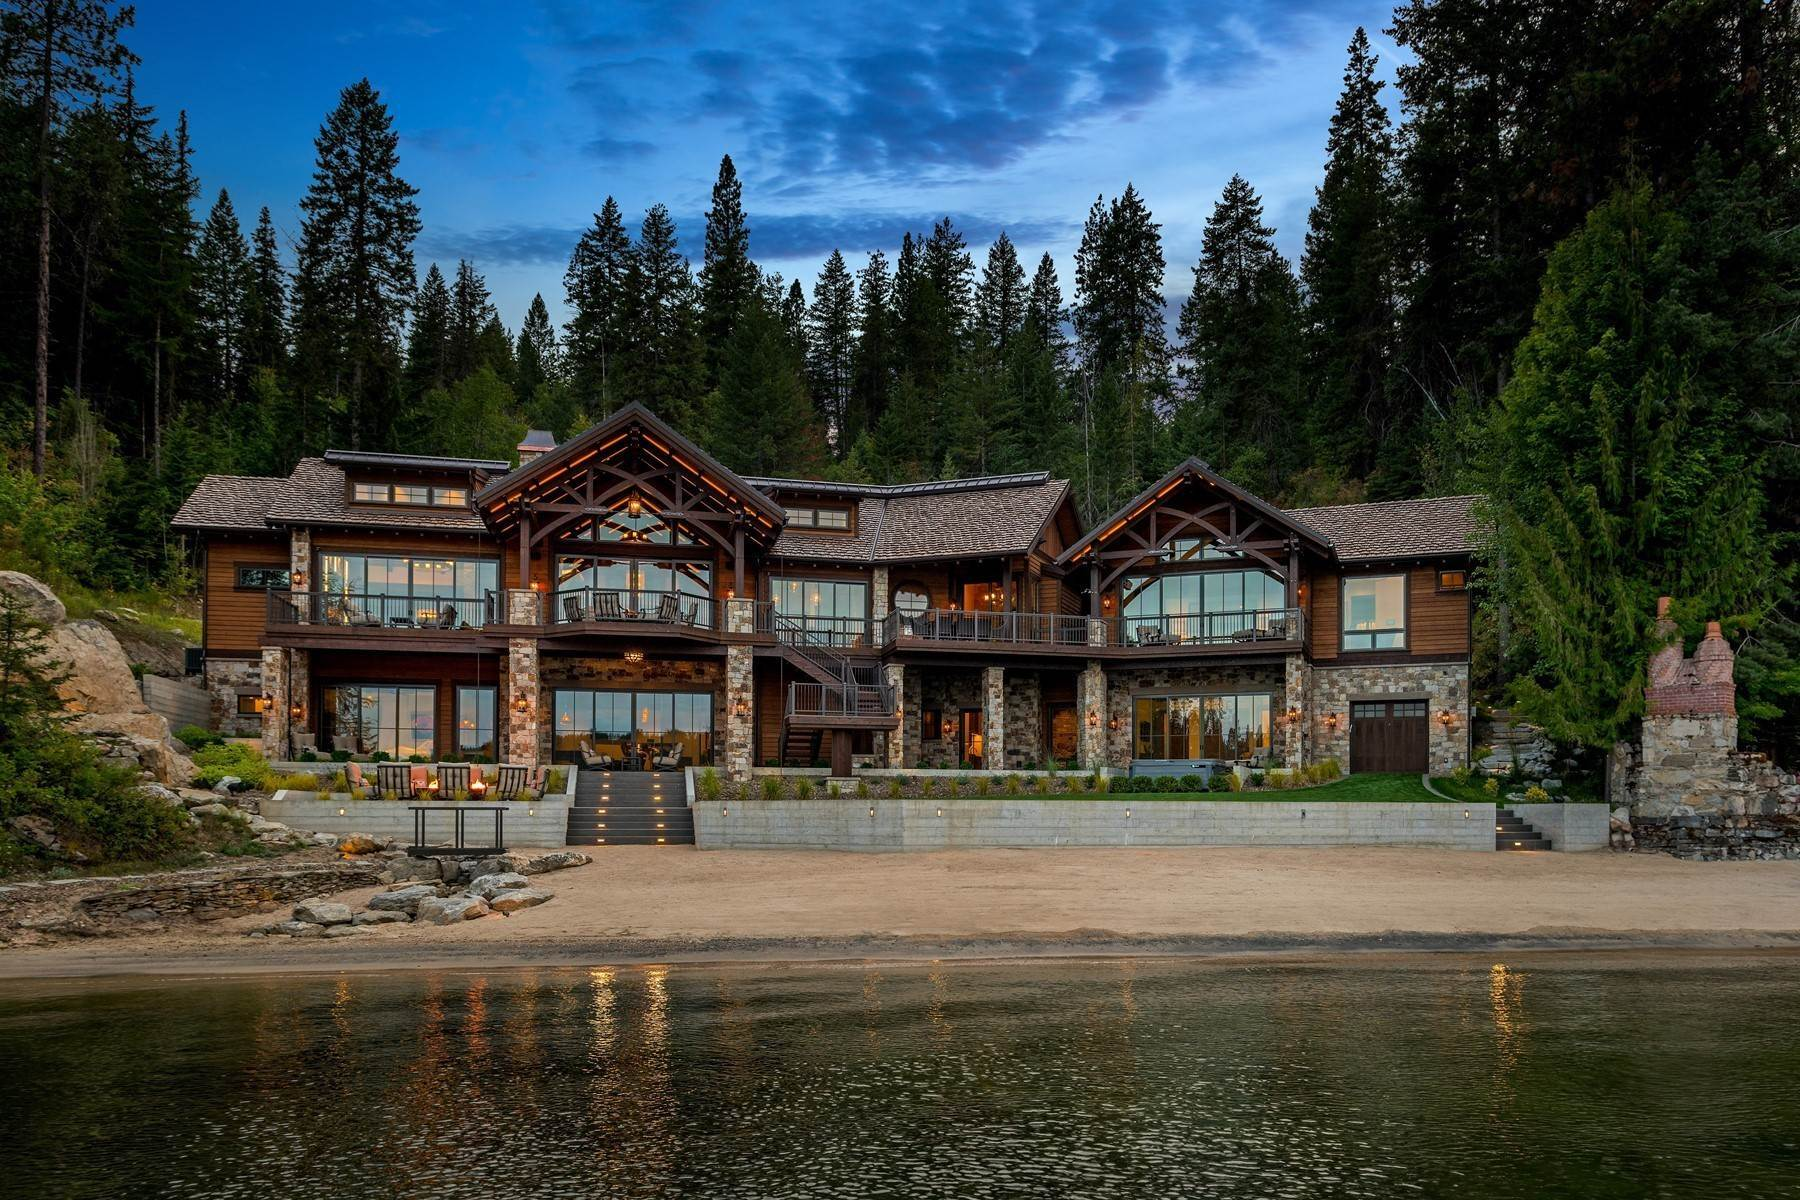 Single Family Homes for Sale at Deer Run Lodge on Lake Coeur d Alene 8240 S Deer Run Dr, Coeur D Alene, Idaho, 83814 United States